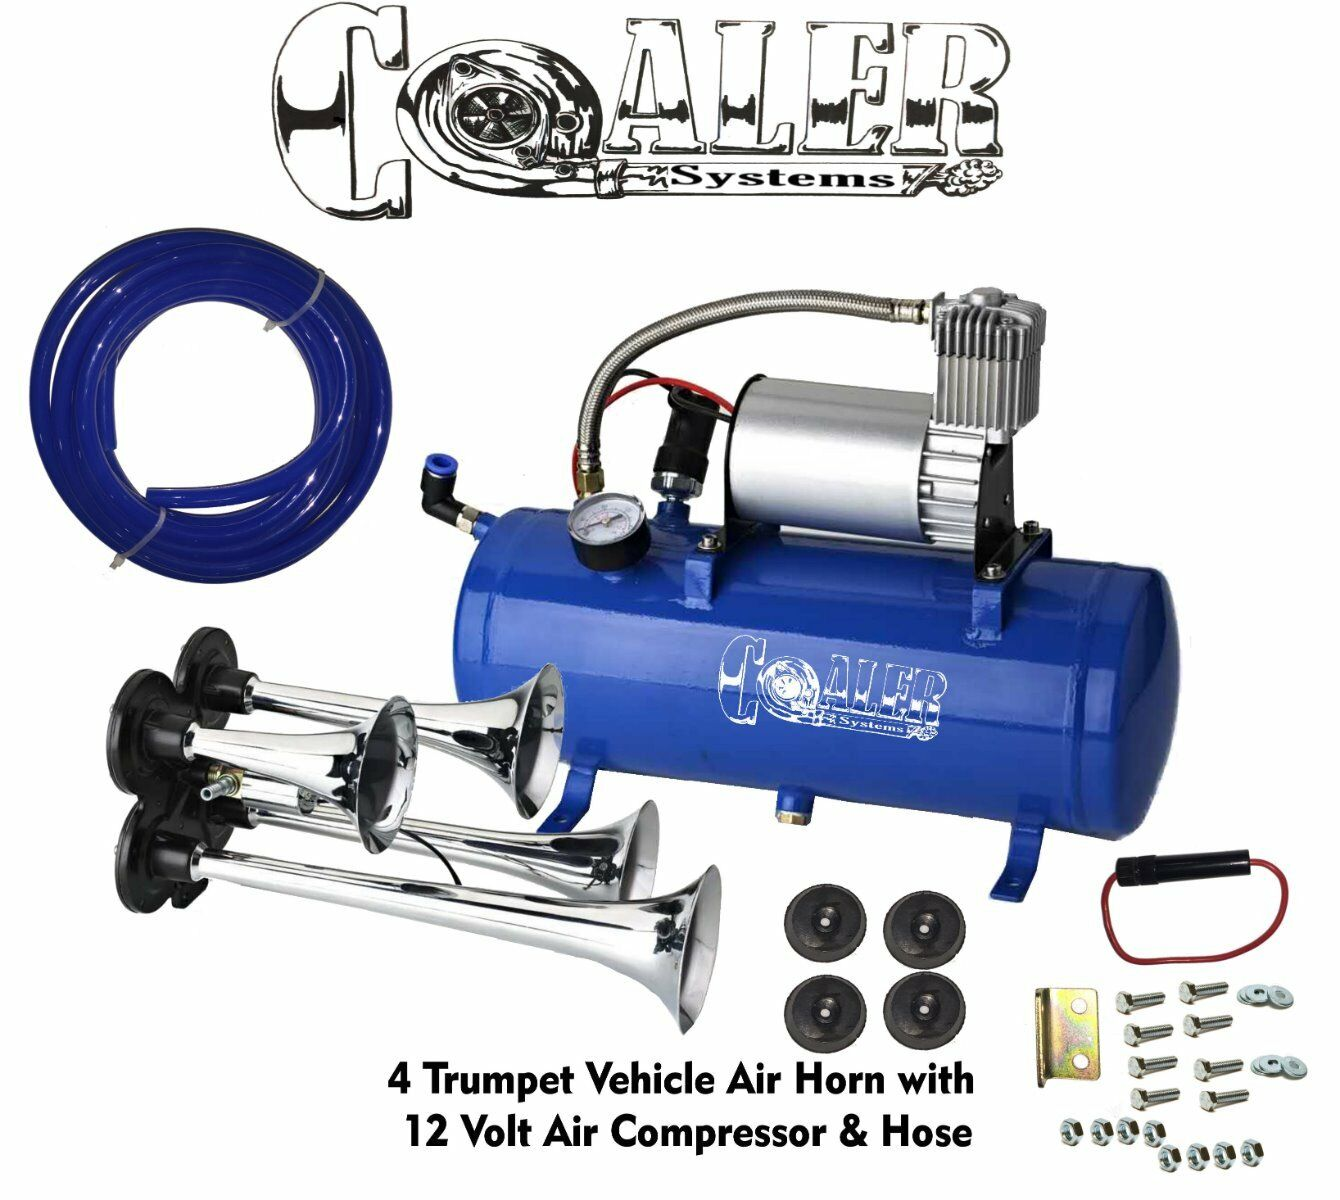 Air Horn 4 Trumpet 12 Volt Compressor 9ft Hose 150 dB Train 120 PSI Kit  Truck